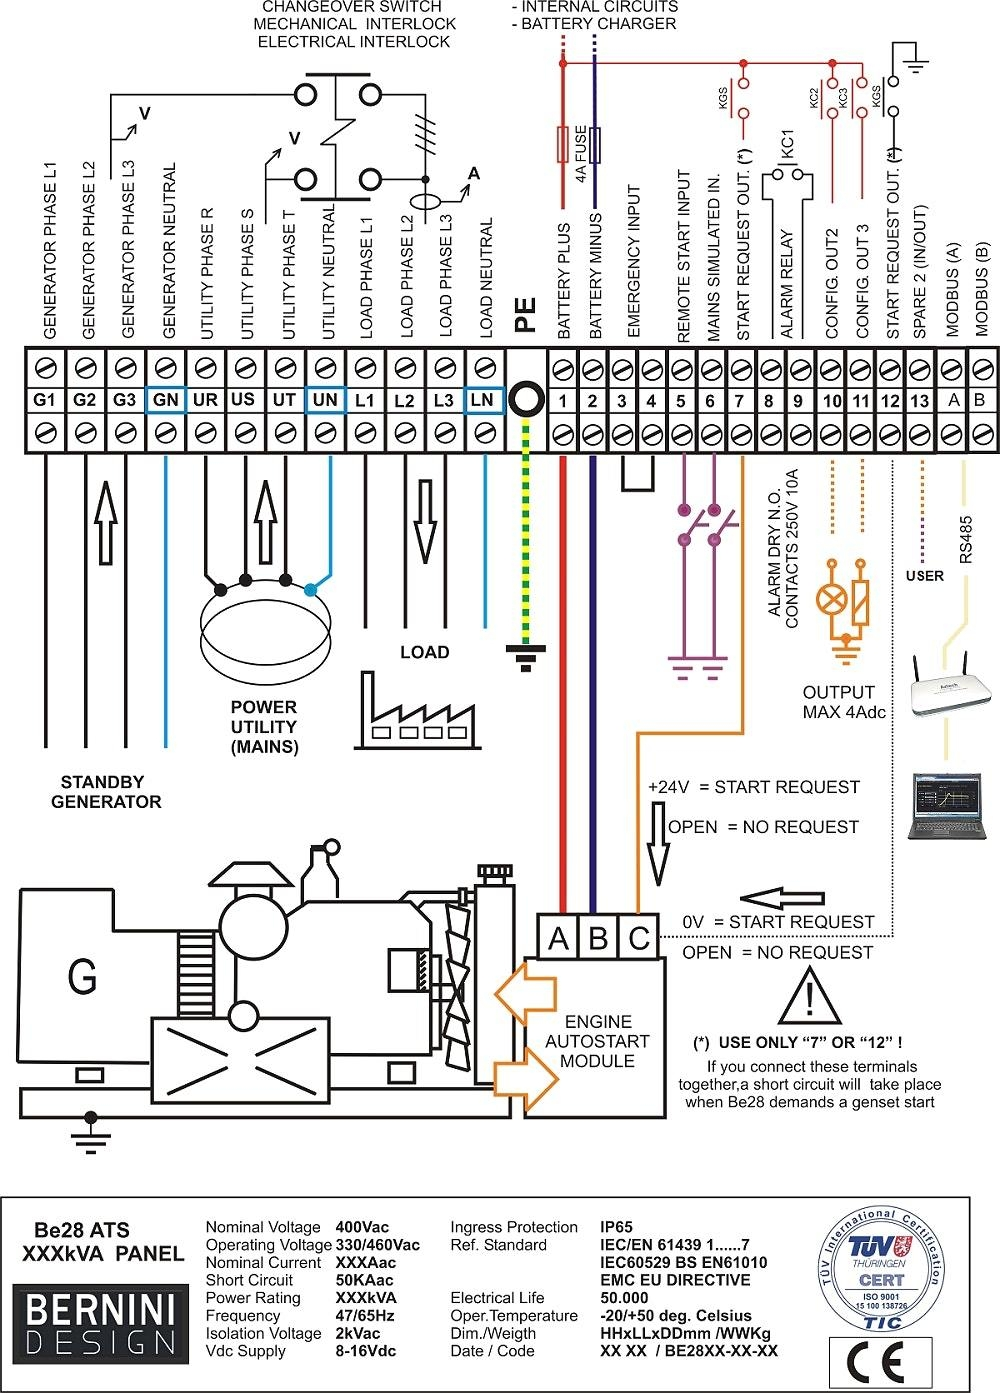 generac ats wiring wiring diagram Wiring Diagram for CTS